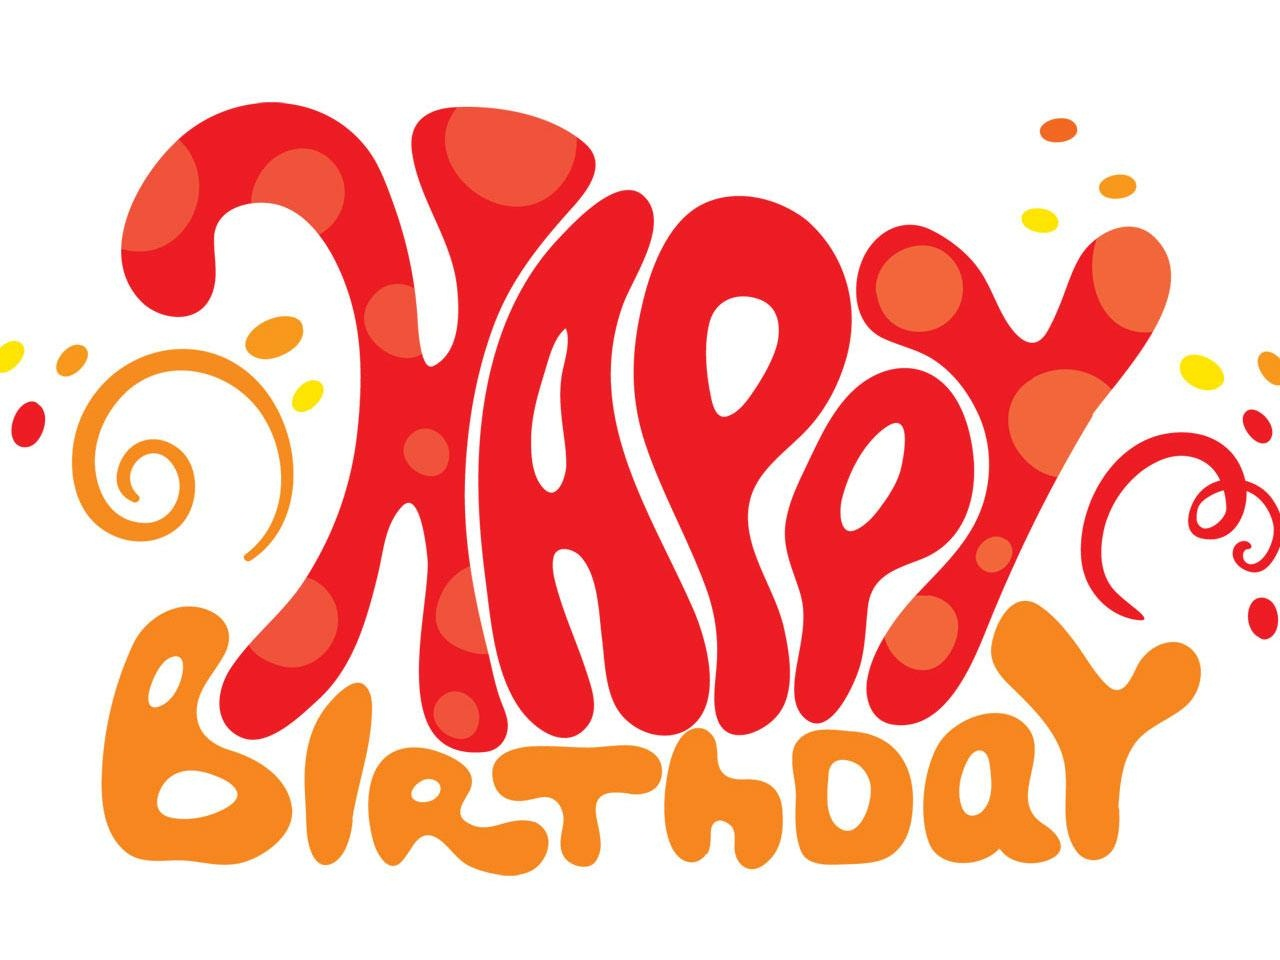 Happy Birthday Cards - Since 1998. Greeting Cards, Quotes